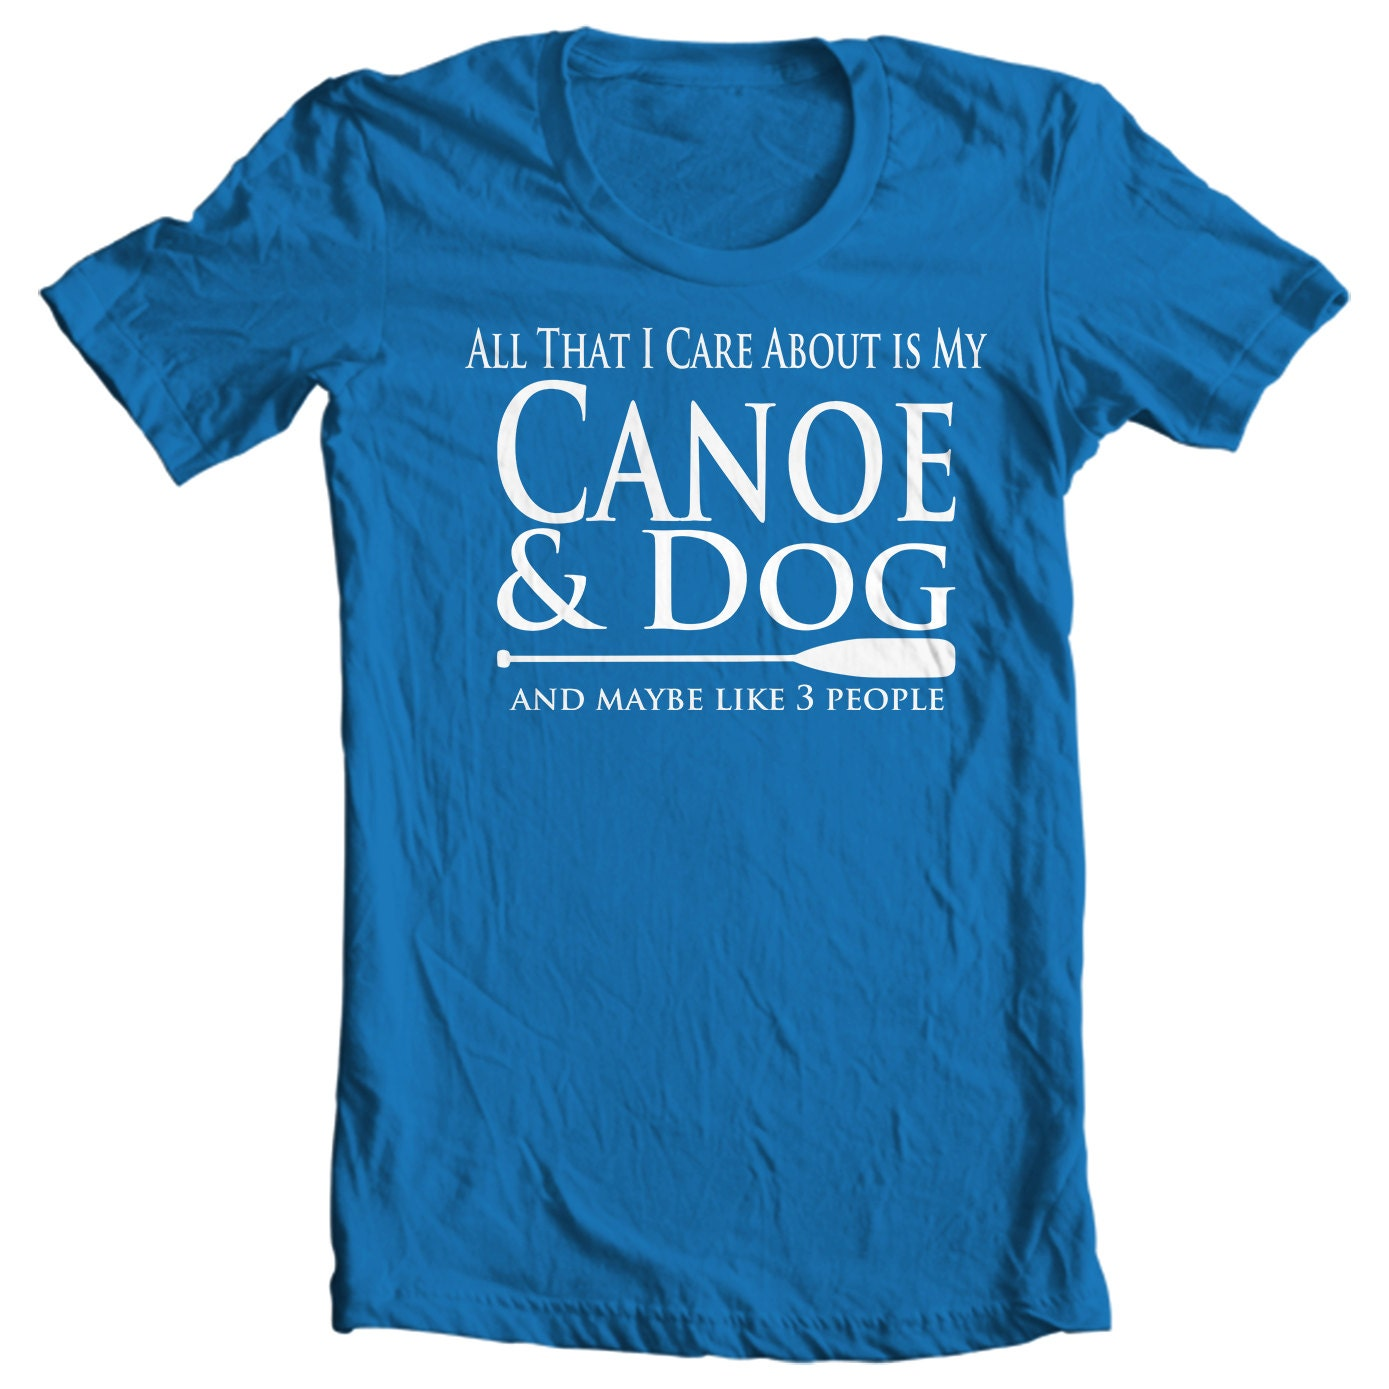 Canoe T-shirt - All That I Care About Is My Canoe & Dog And Maybe Like Three People - Paddle Life Canoeing T-shirt